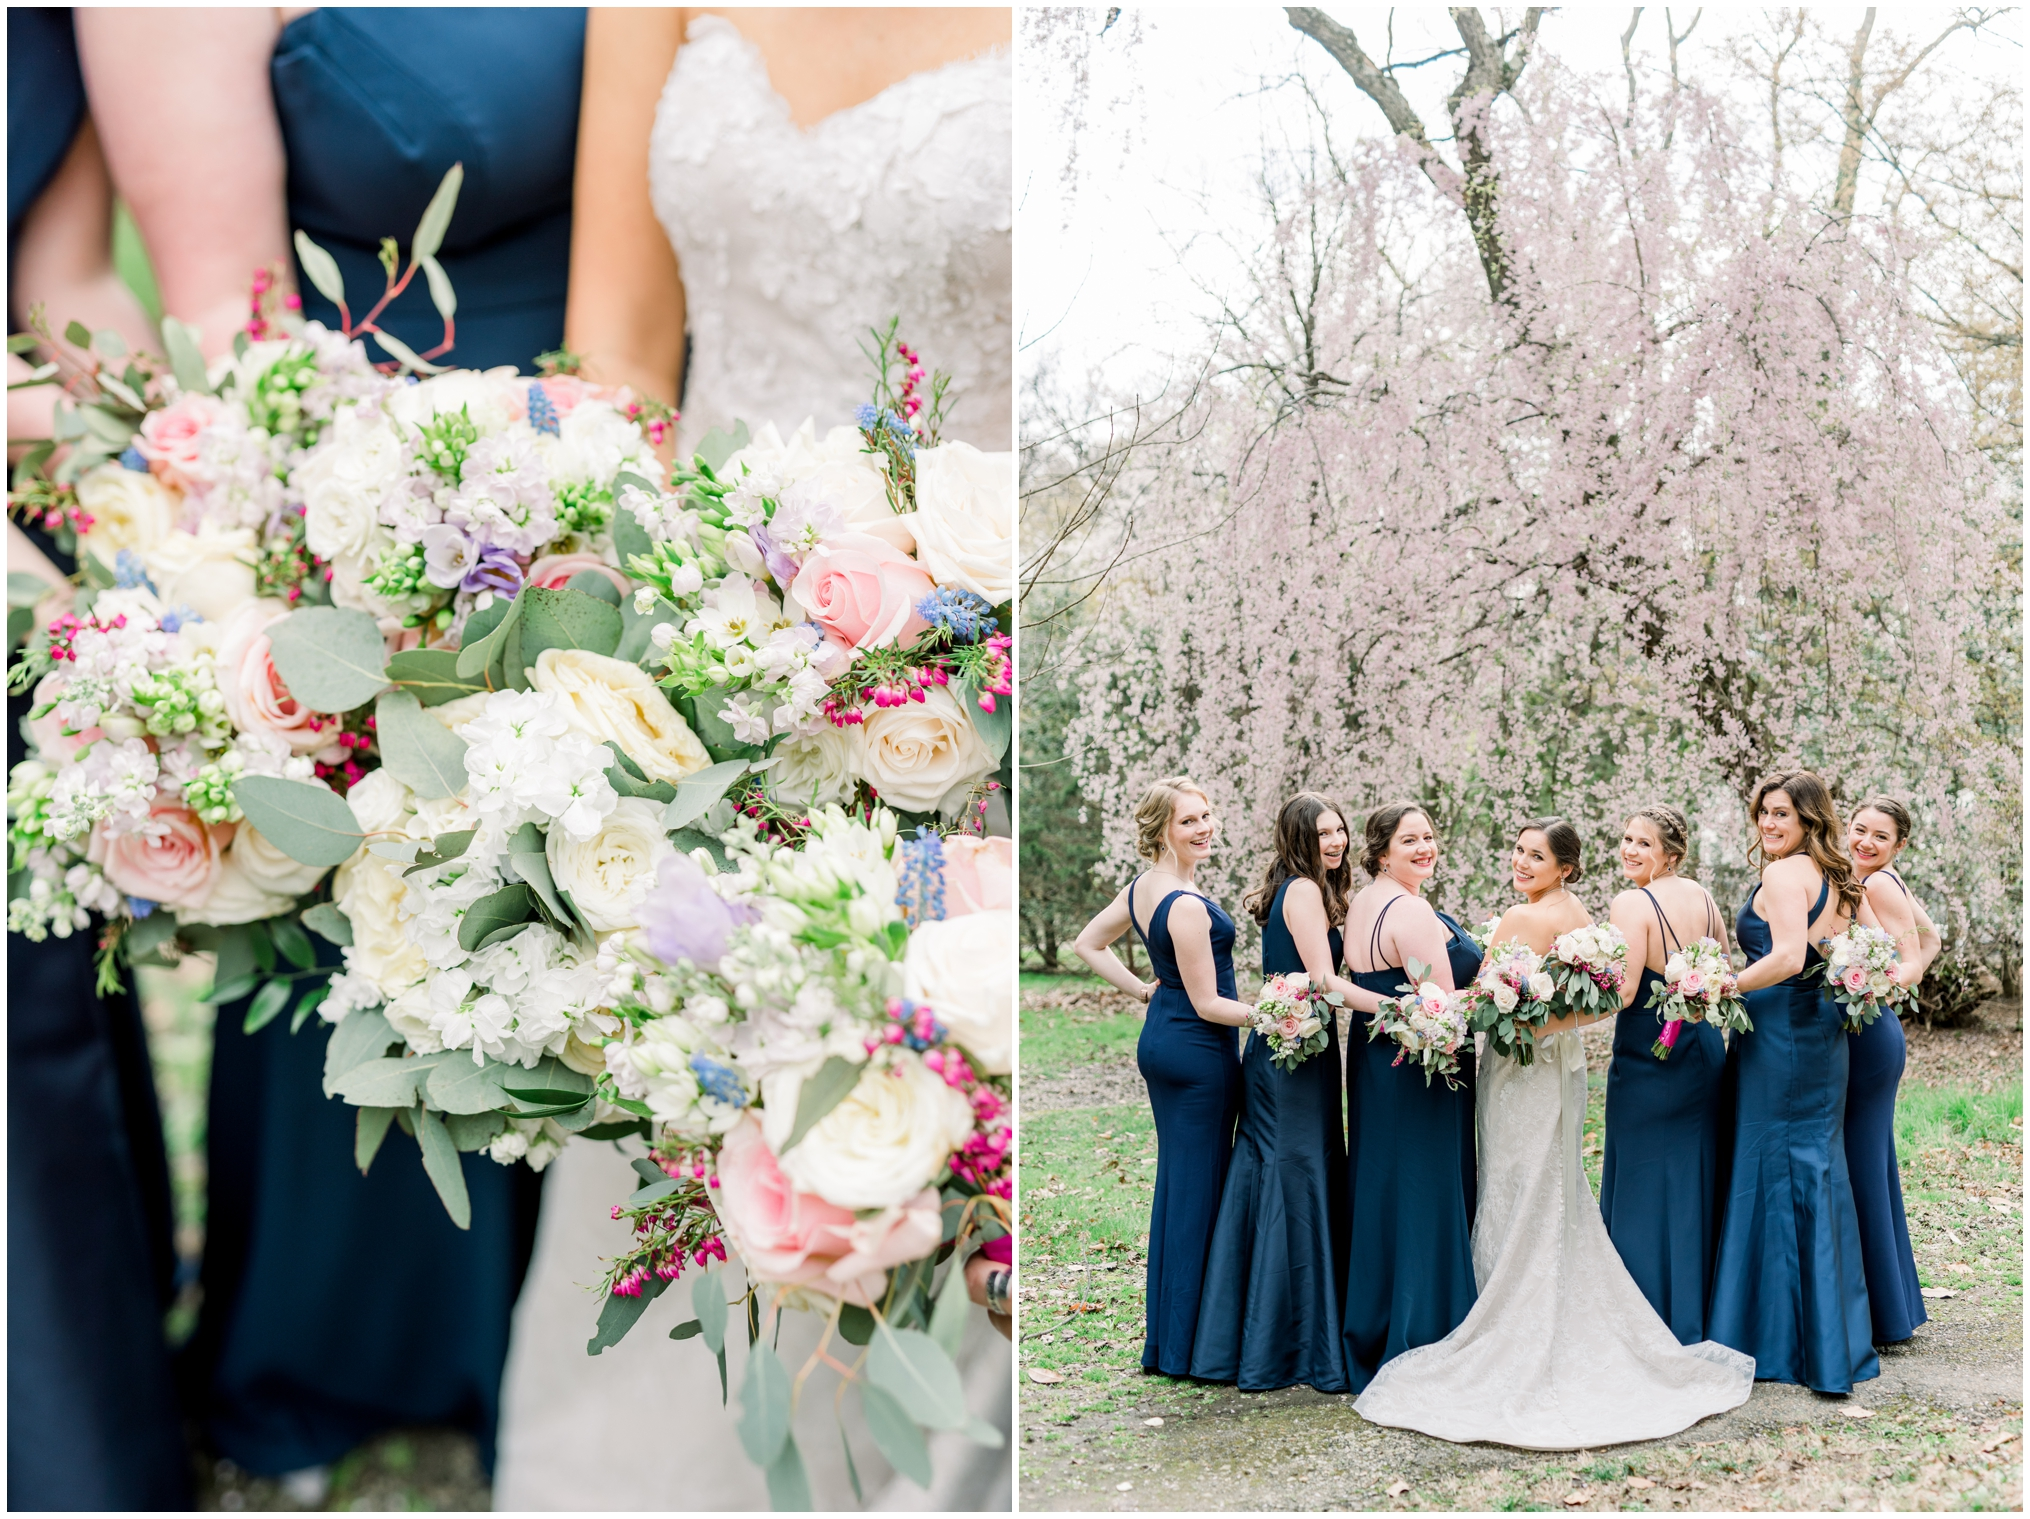 Krista Brackin Photography | April Wedding at The Carriage House at Rockwood Park_0062.jpg